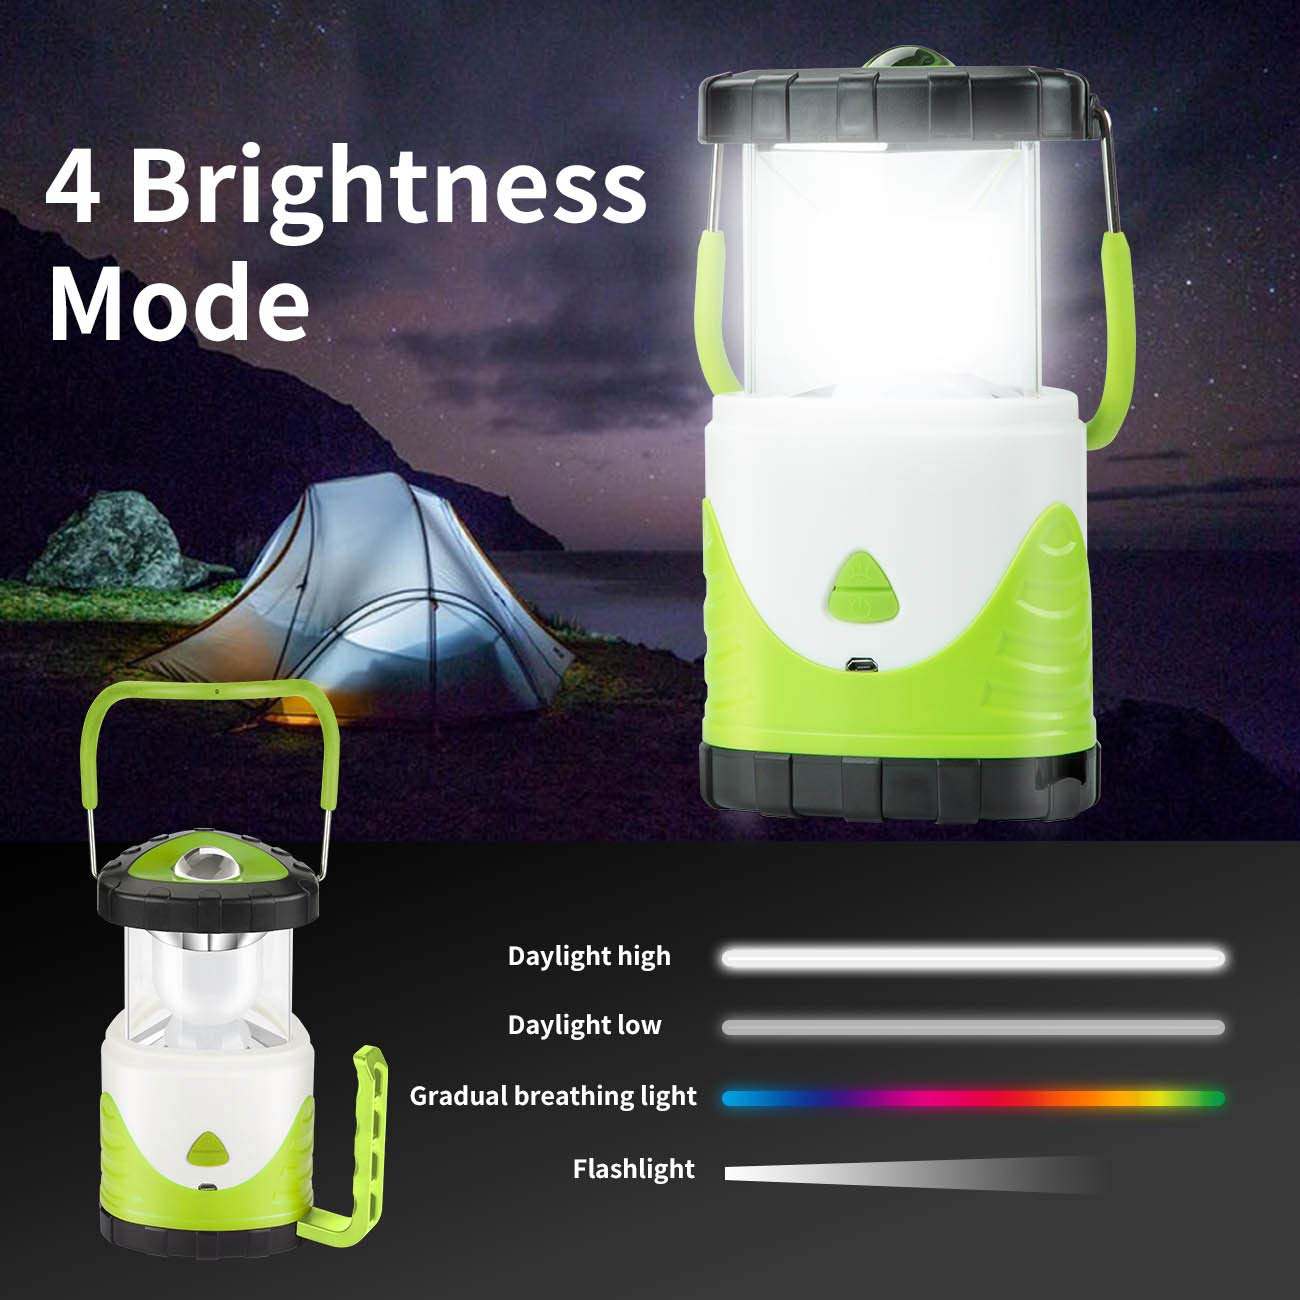 Outages Outdoor Portable Lantern Camping Lantern Lightweight Vintoney LED Camping Lantern Batteries Included Black Survival Kit for Hurricane Storm Collapsible Emergency